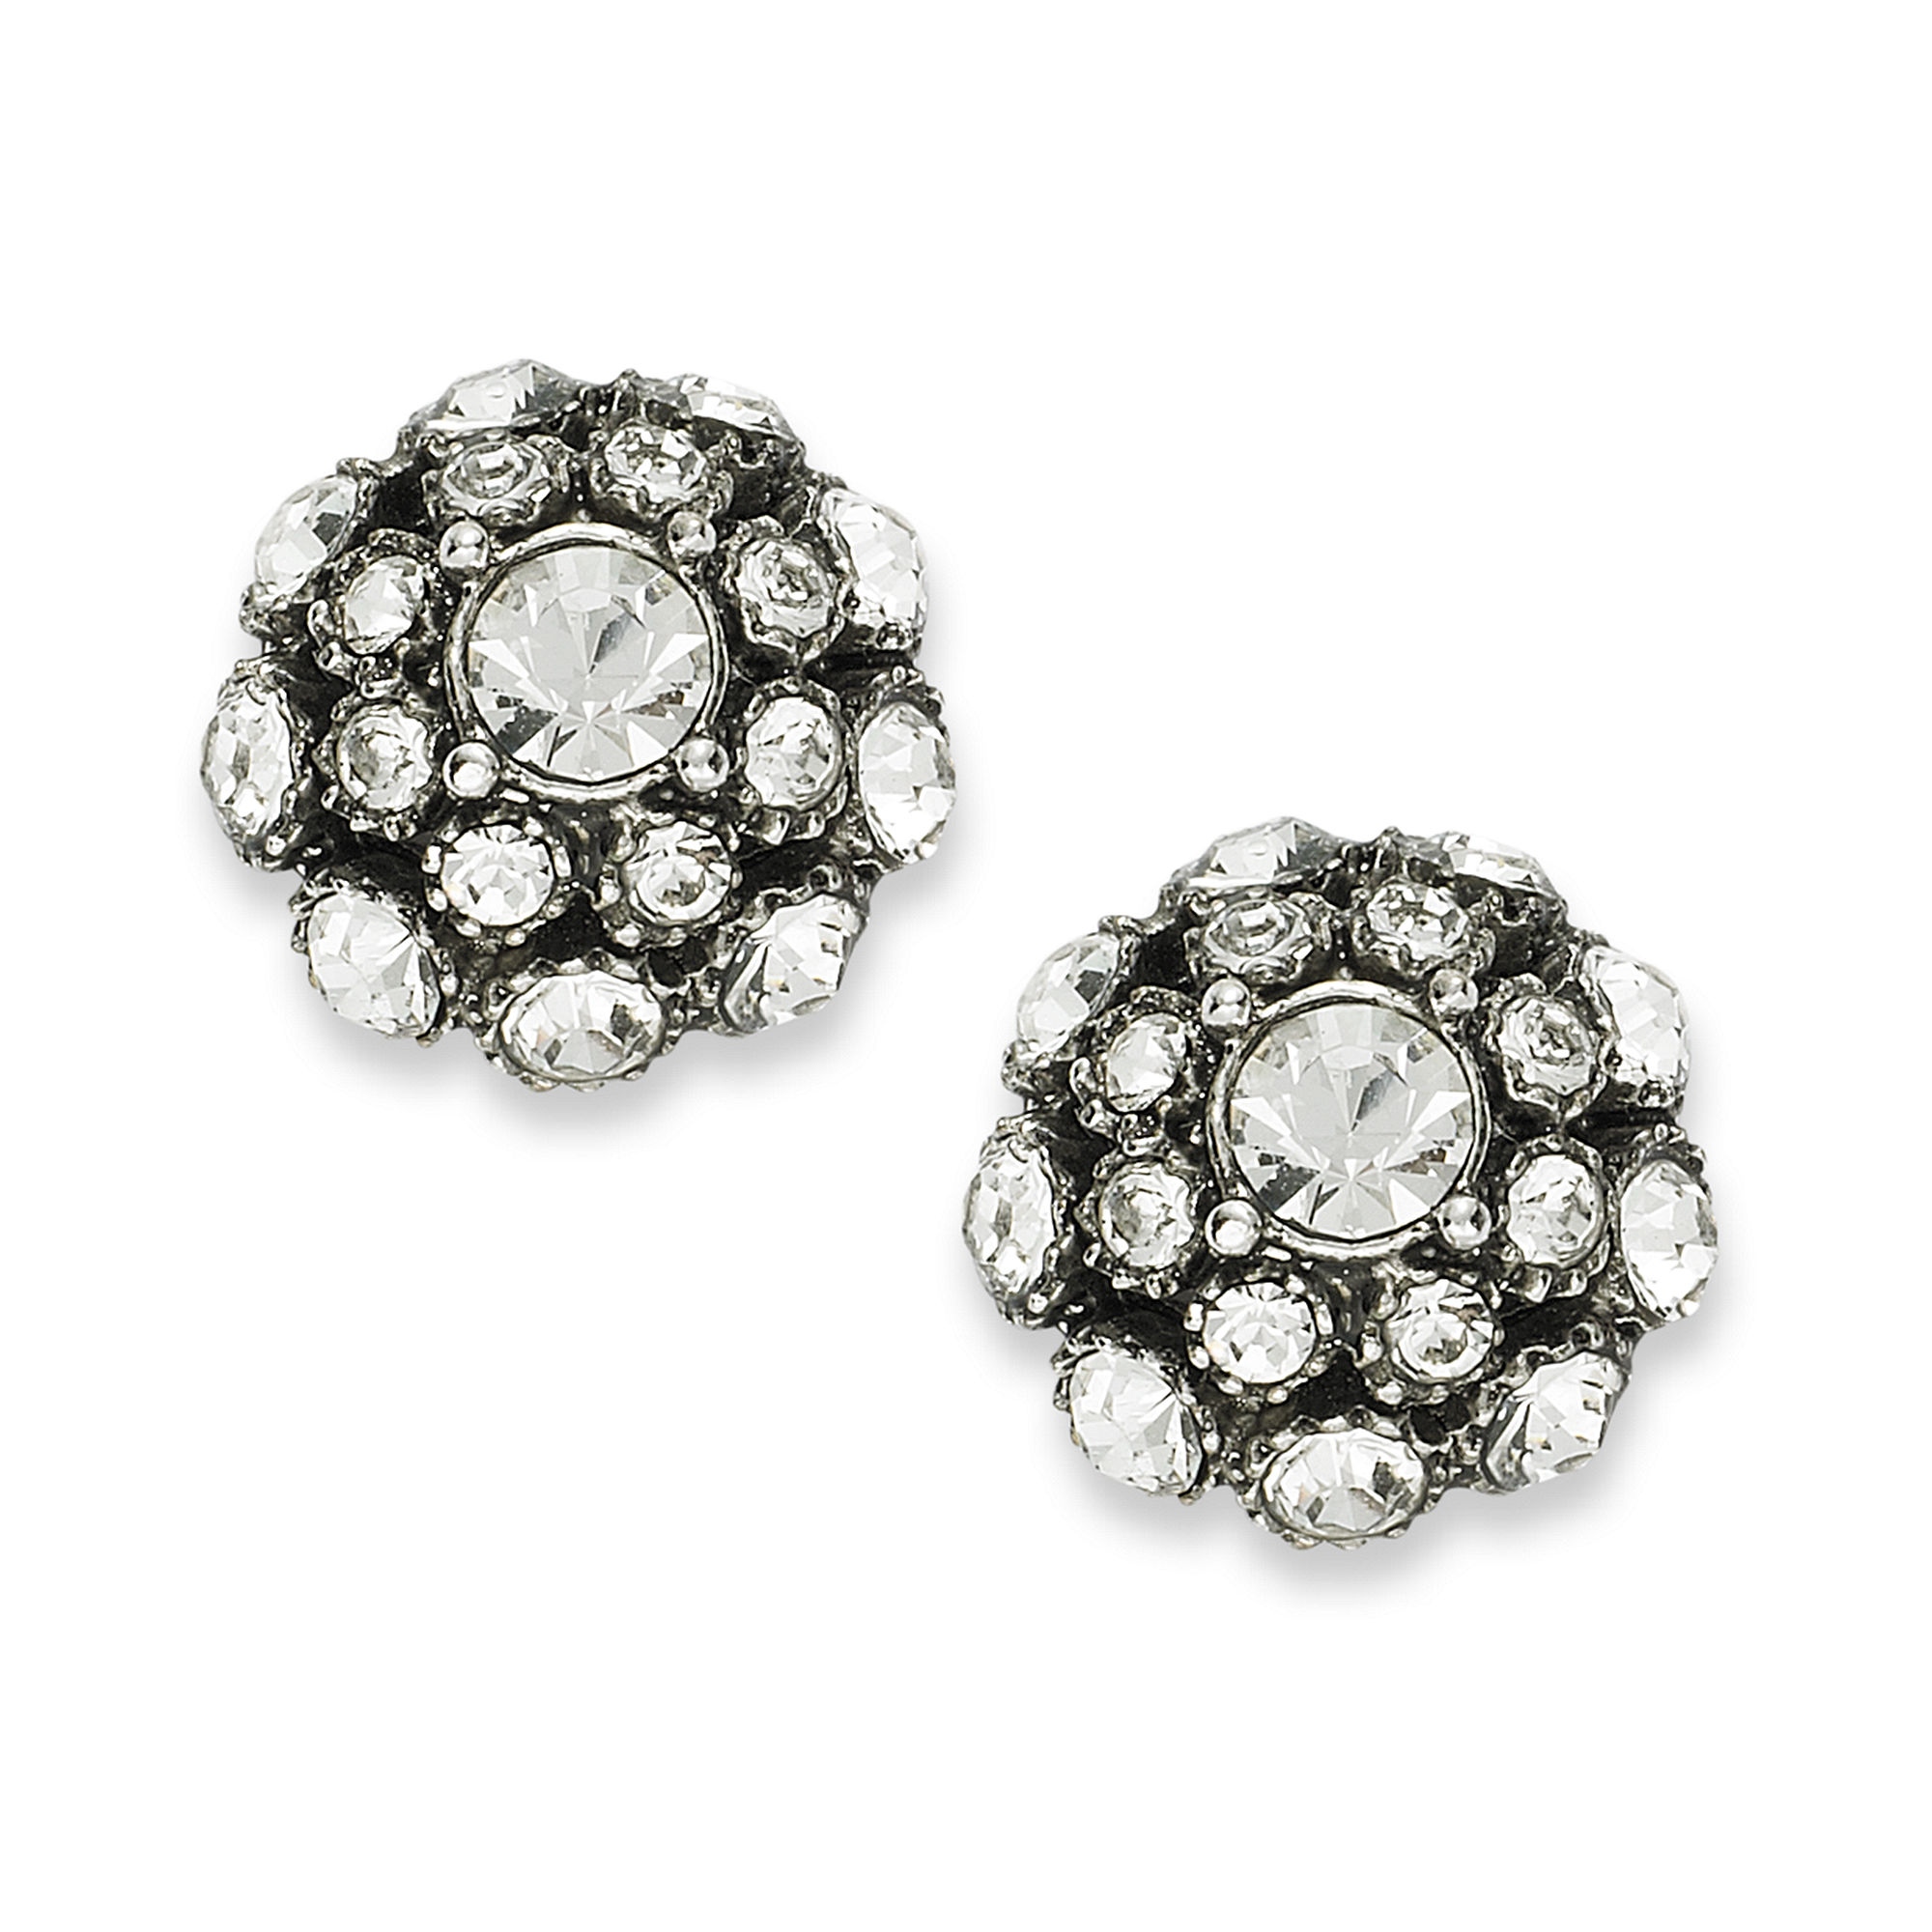 diamond hand earrings earring antique studs cut blingtastic products stud fetheray vintage